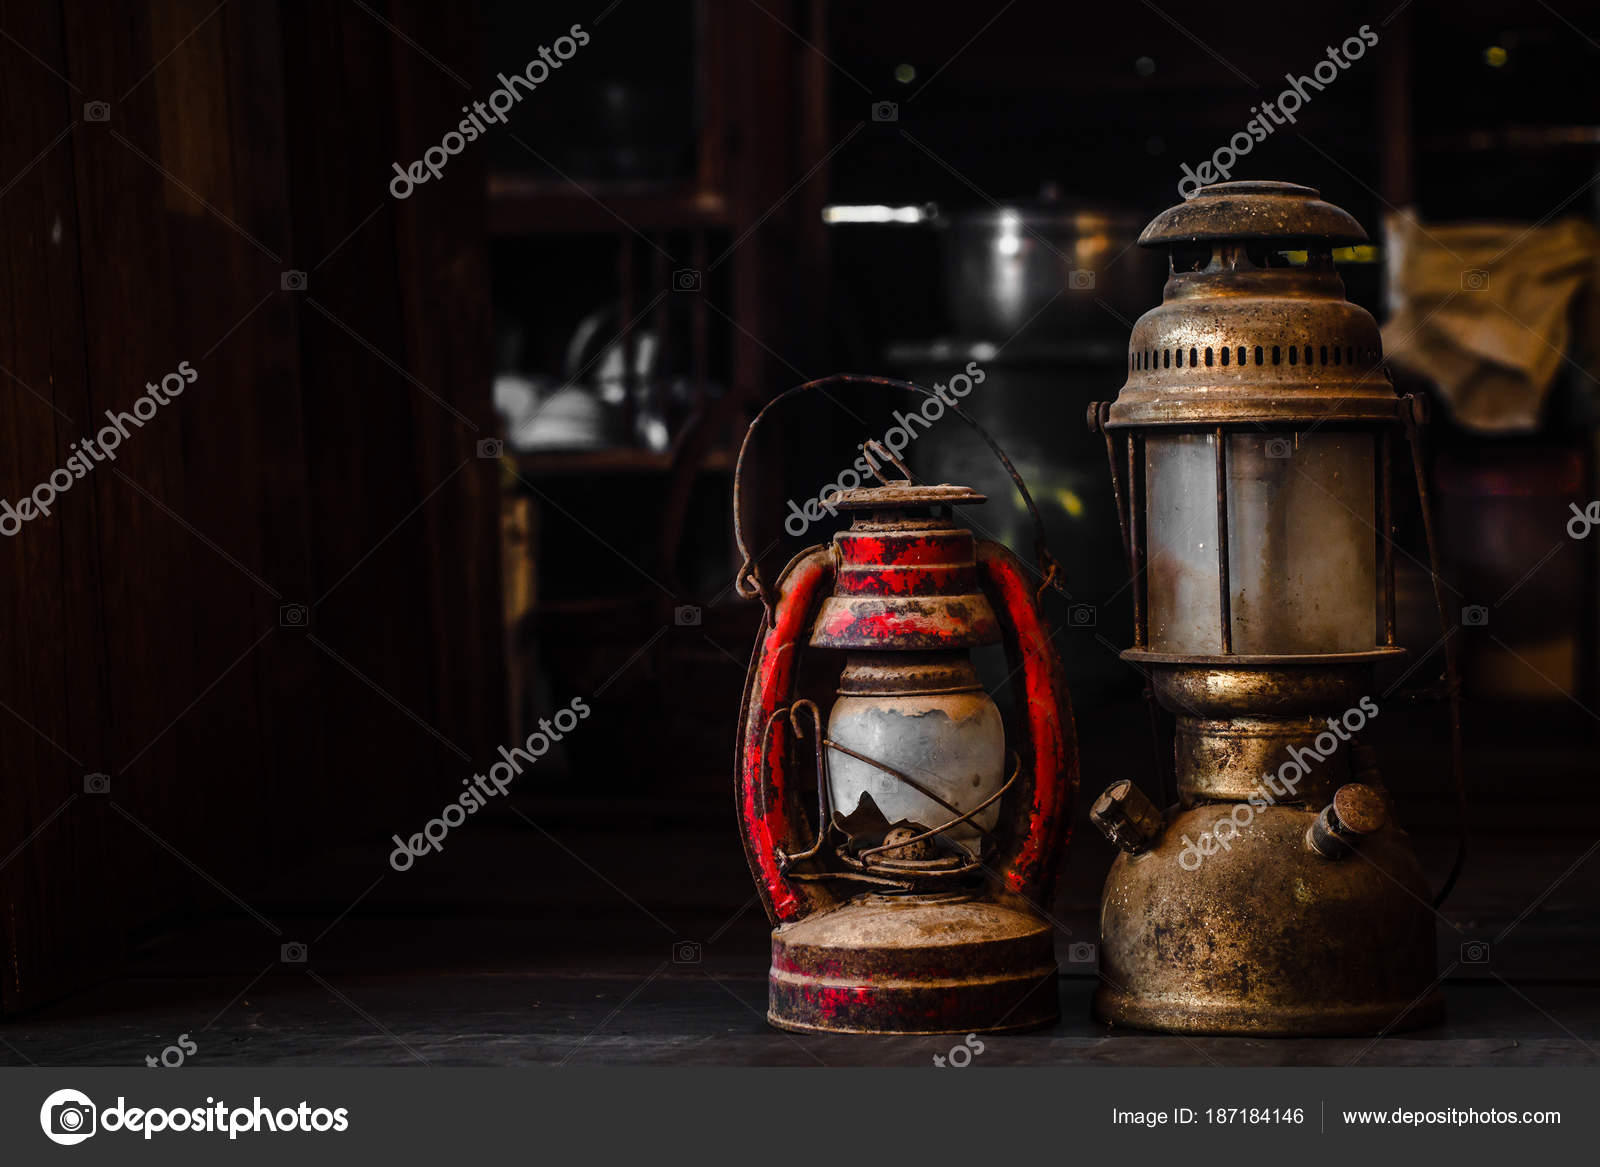 Old Fashioned Vintage Oil Lamp Old Fashioned Vintage Kerosene Oil Lantern Lamp Burning With A Soft Glow Light With Aged Wooden Floor With Copy Space Stock Photo C Yuthana Stock 187184146